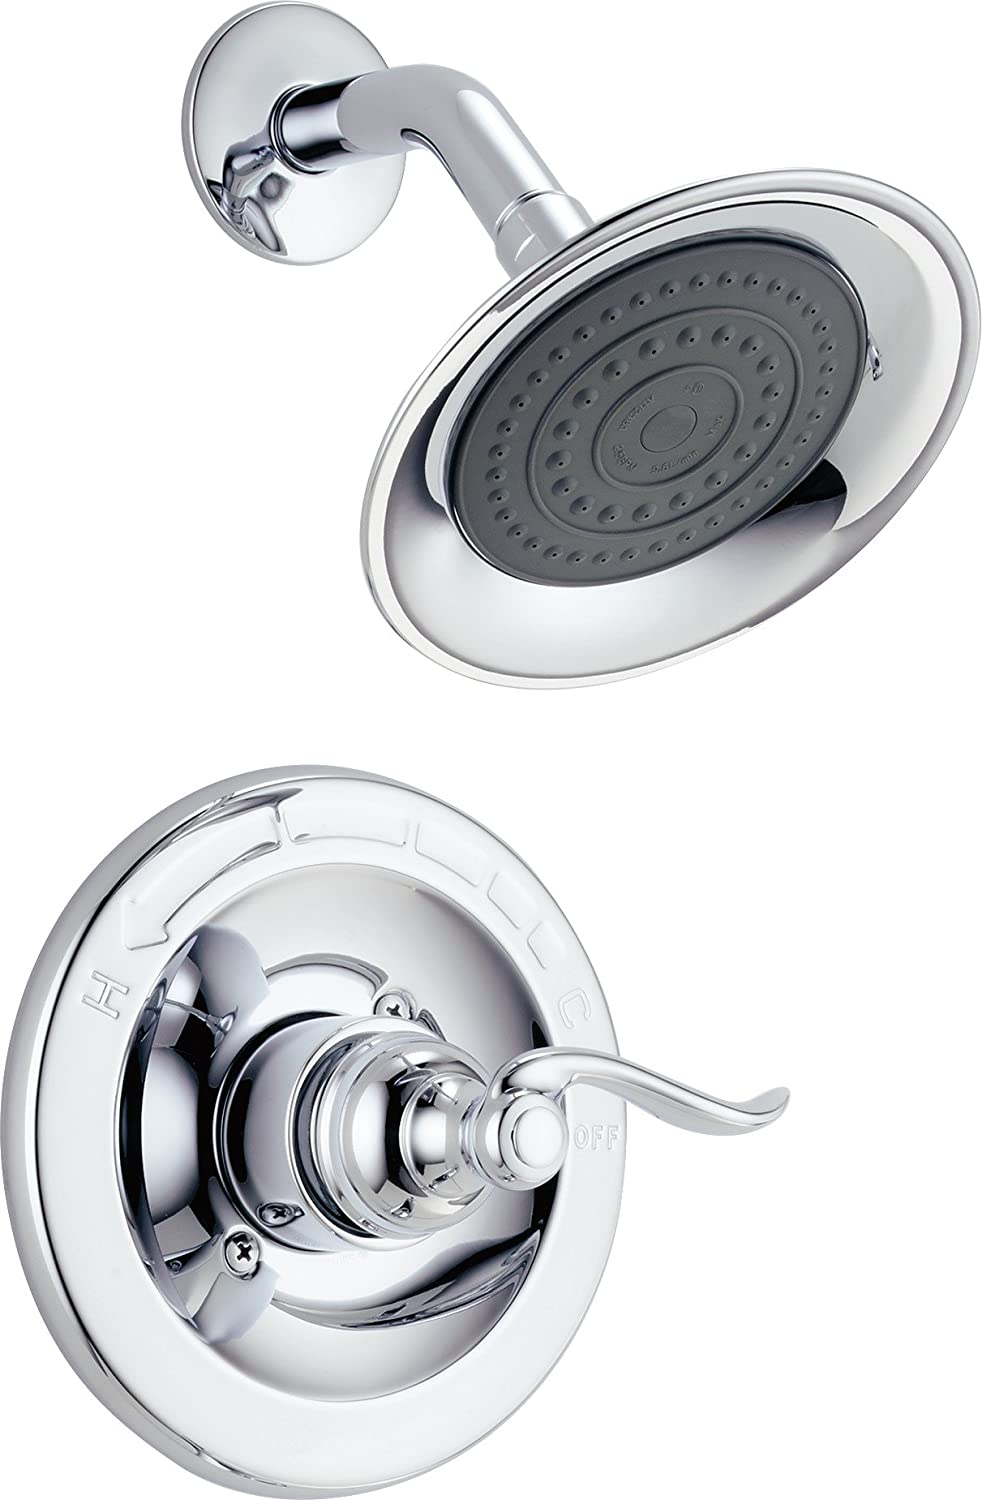 Delta BT14296 Windemere Monitor 14 Series Shower Trim, Chrome Delta Faucet